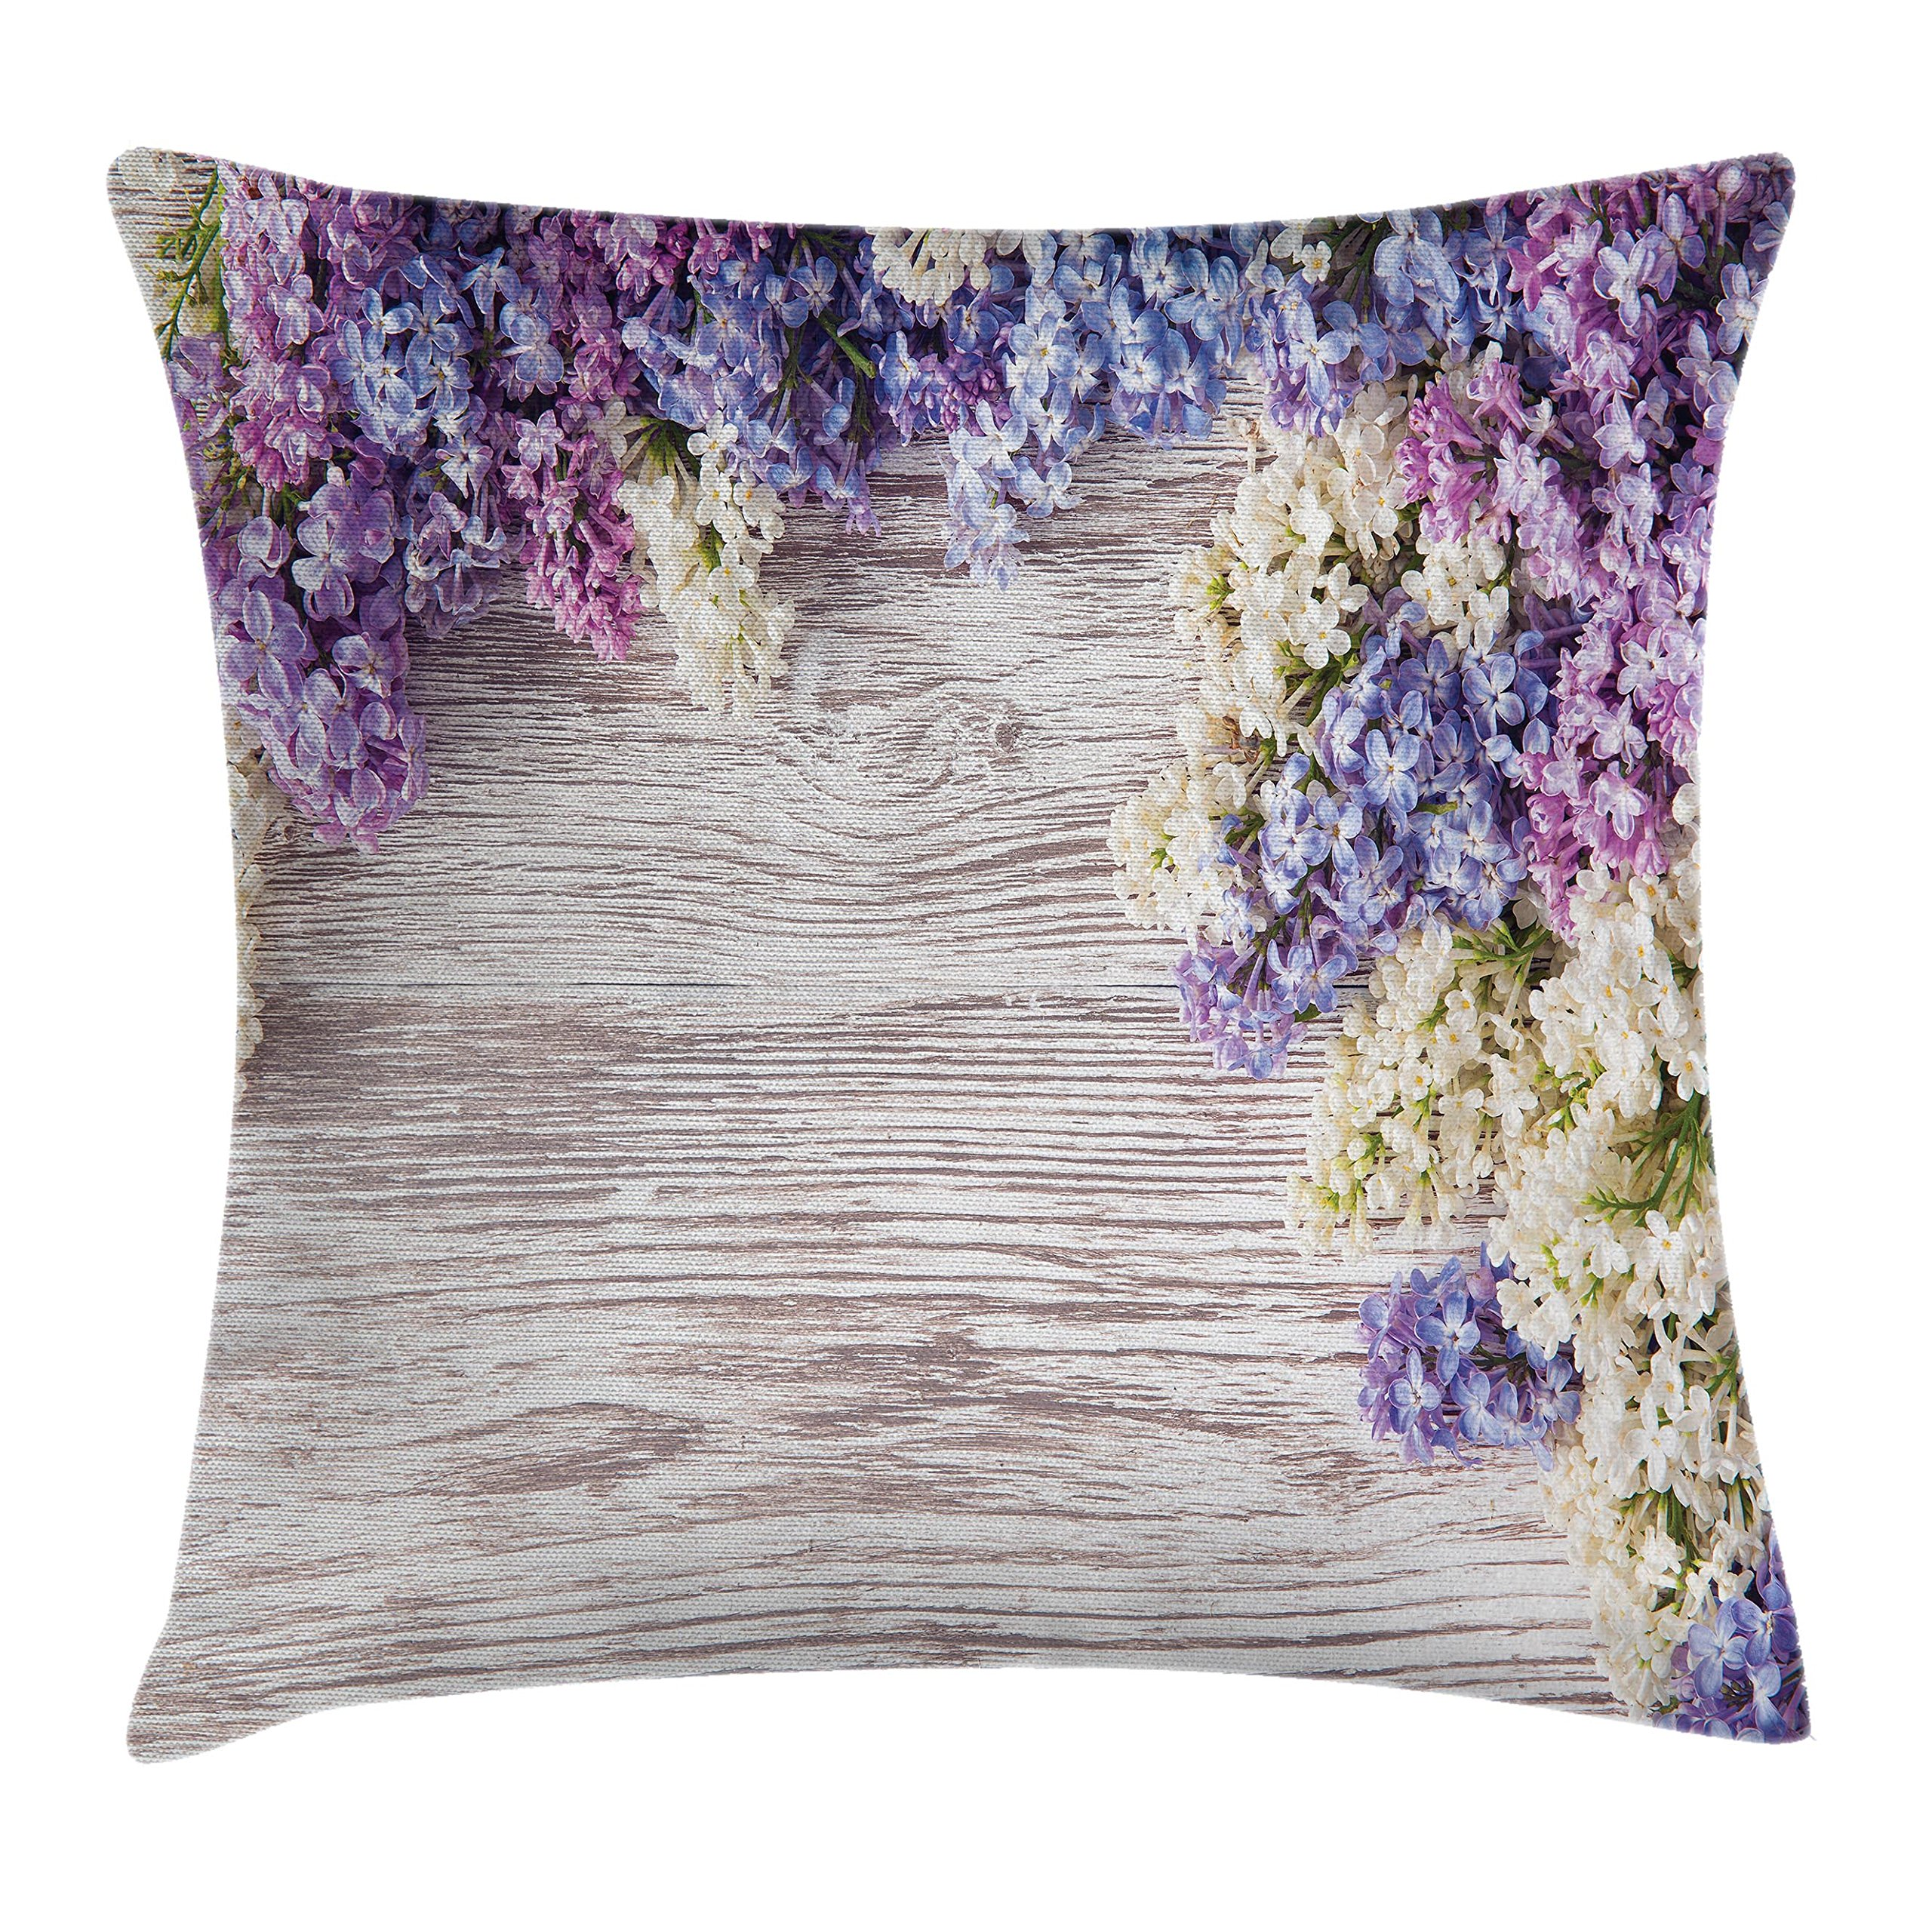 Ambesonne Rustic Home Decor Throw Pillow Cushion Cover, Lilac Flowers Bouquet on Wood Table Spring Nature Romance Love Theme, Decorative Square Accent Pillow Case, 16 X 16 Inches, Violet Brown